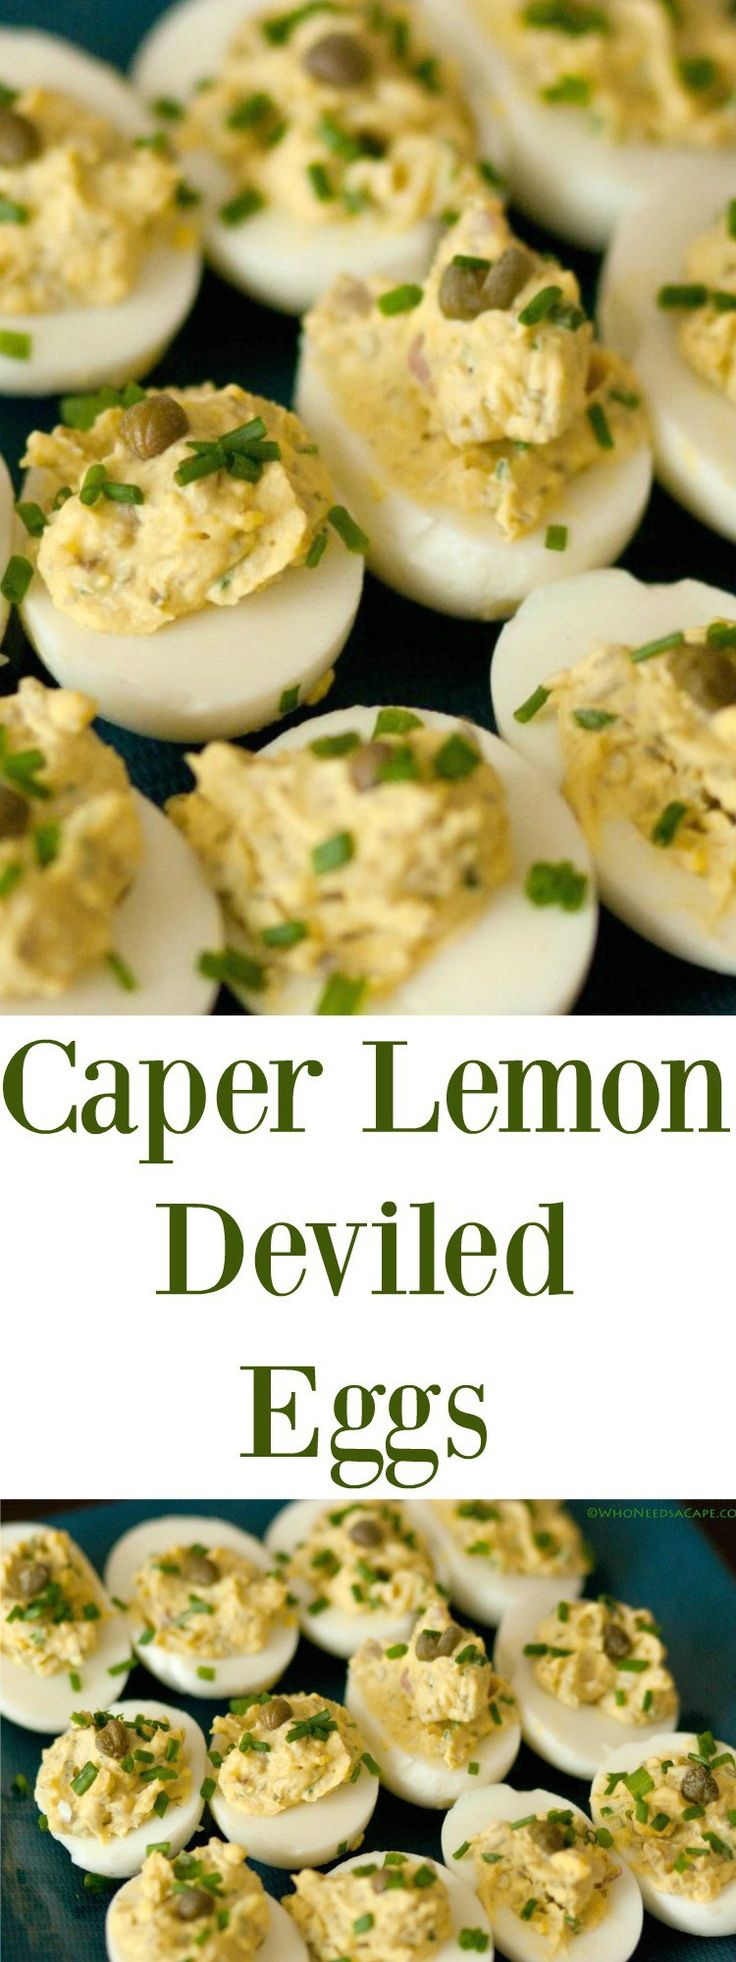 Caper Lemon Deviled Eggs are a tasty appetizer that will WOW your ...